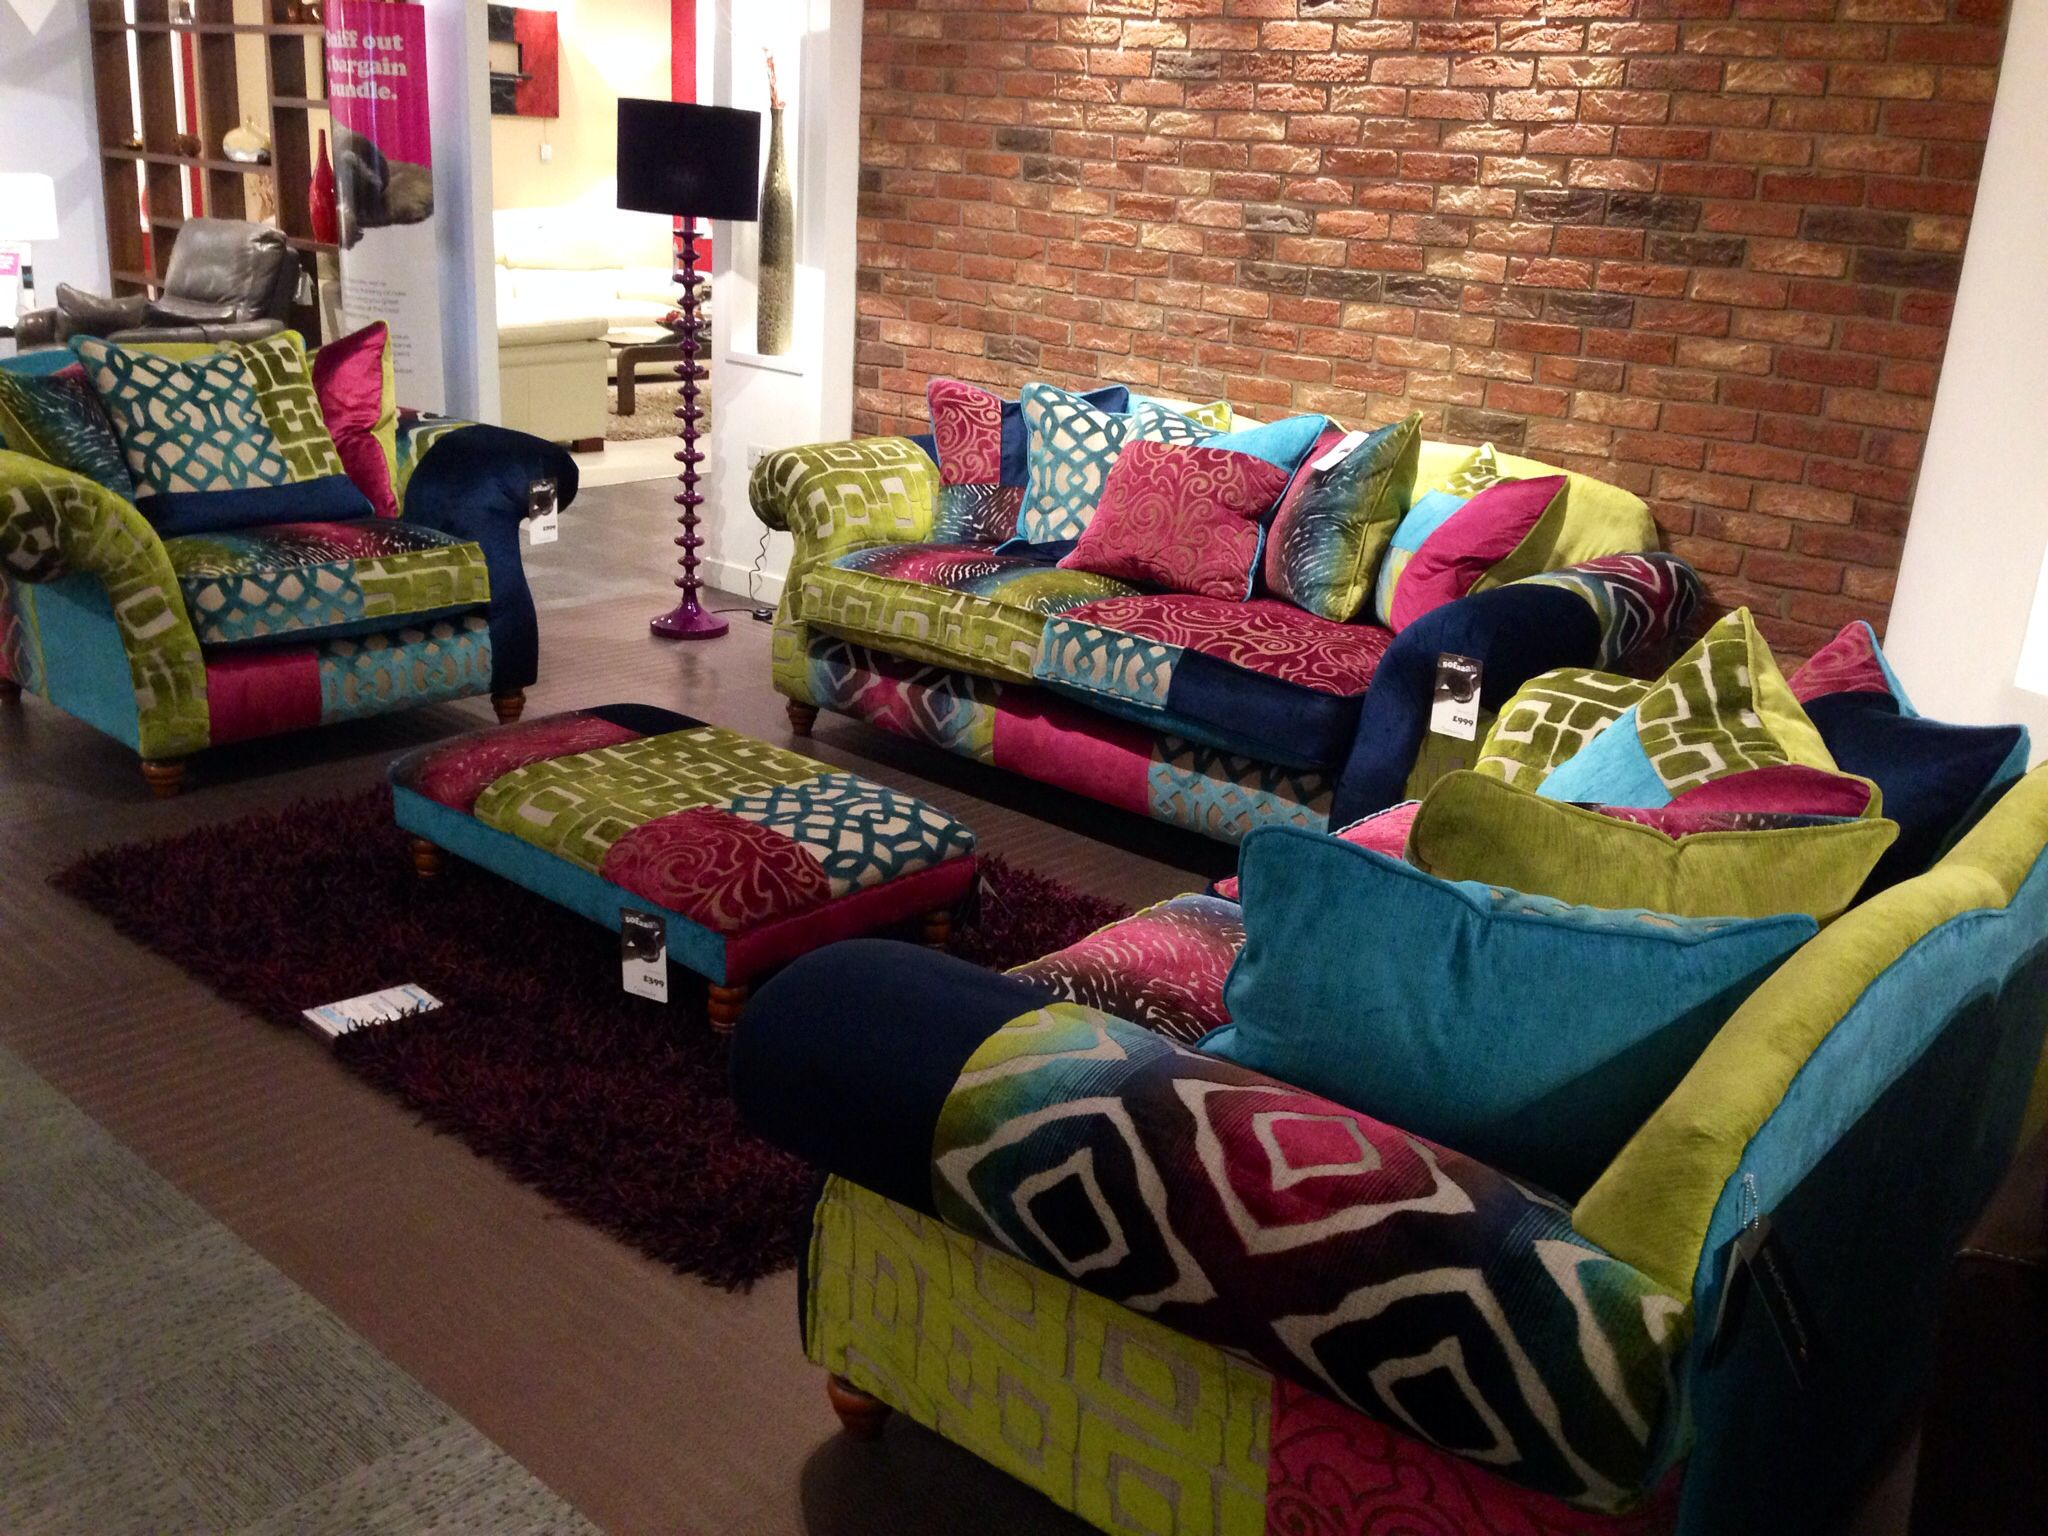 Love multicoloured sofas u chairs IdeasuThings for the home